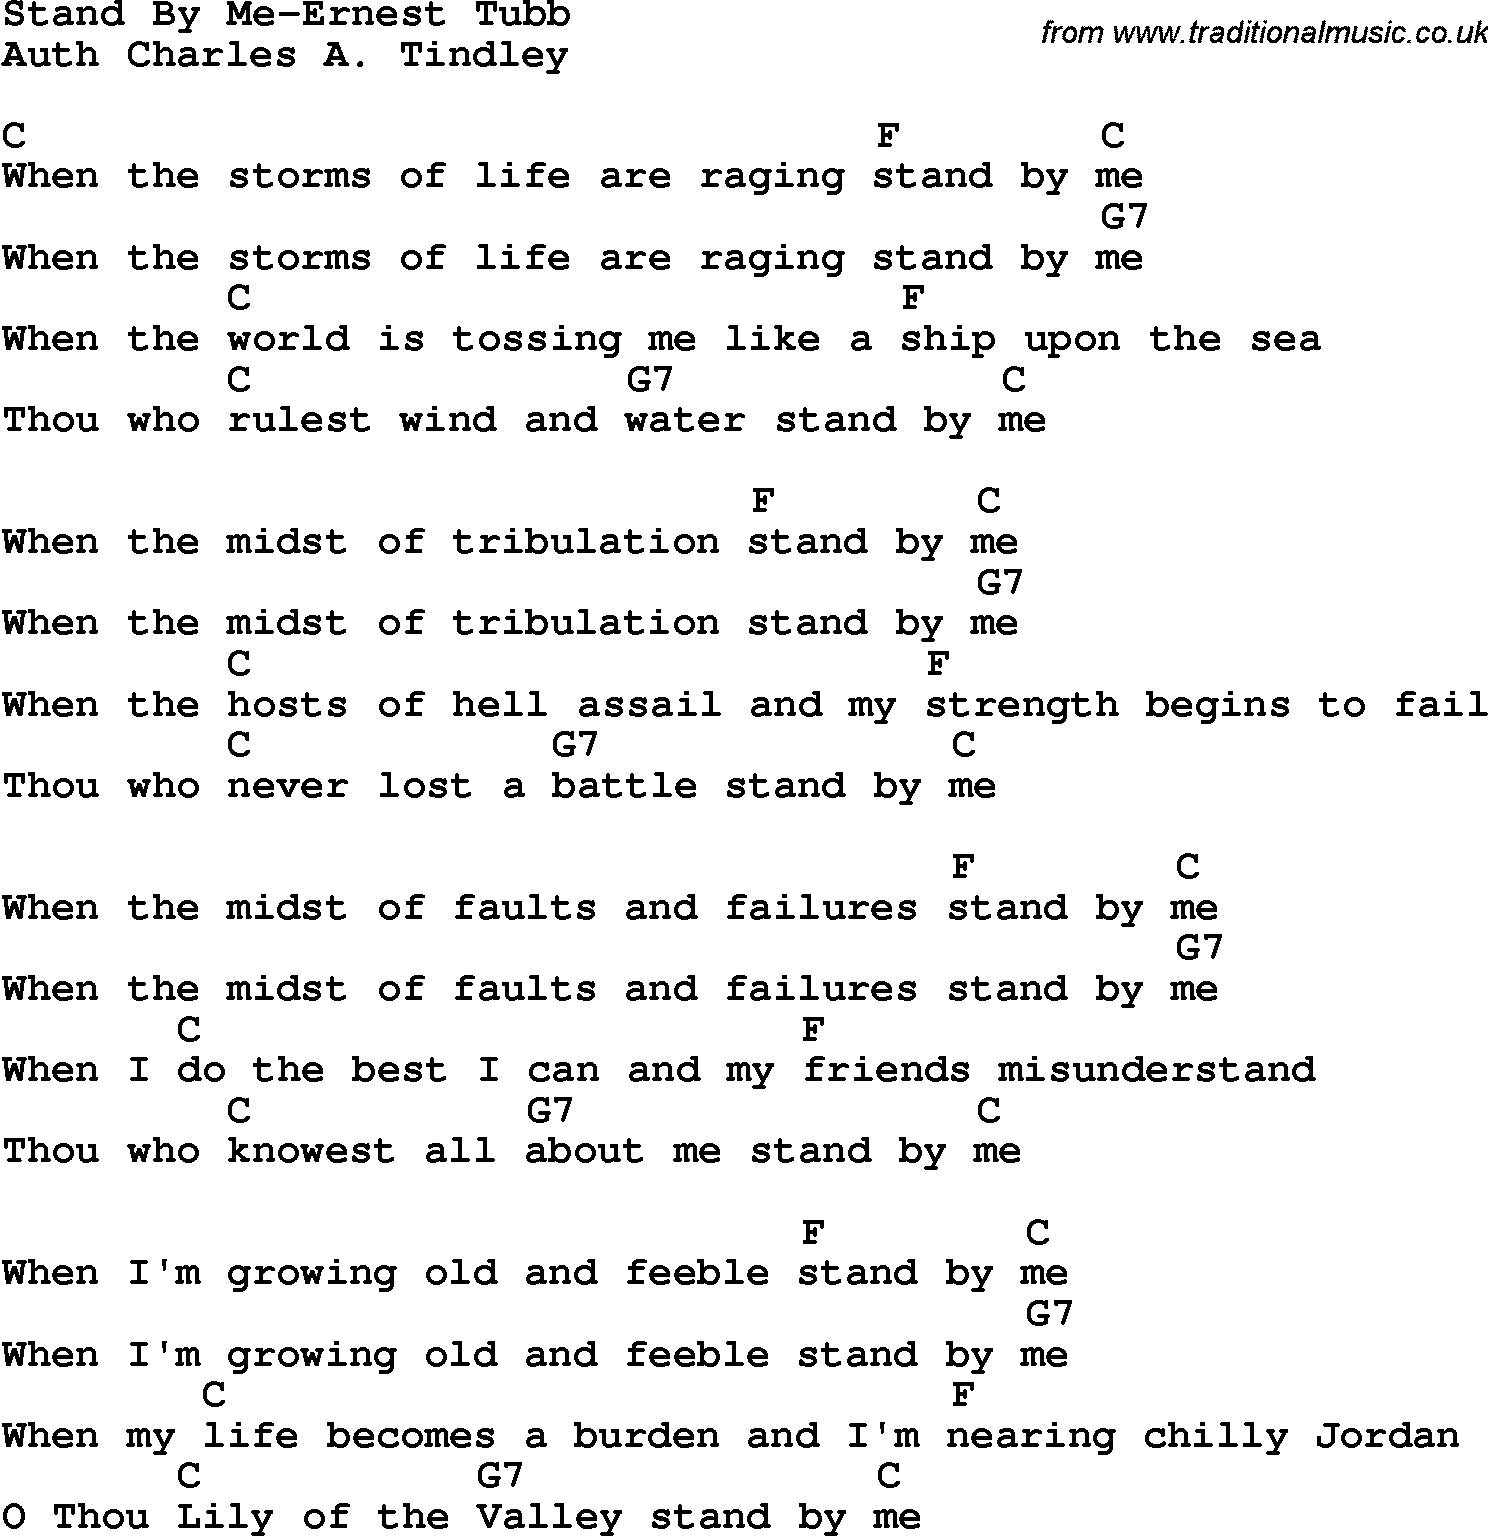 Stand By Me Chords Country Southern And Bluegrass Gospel Song Stand Me Ernest Tubb